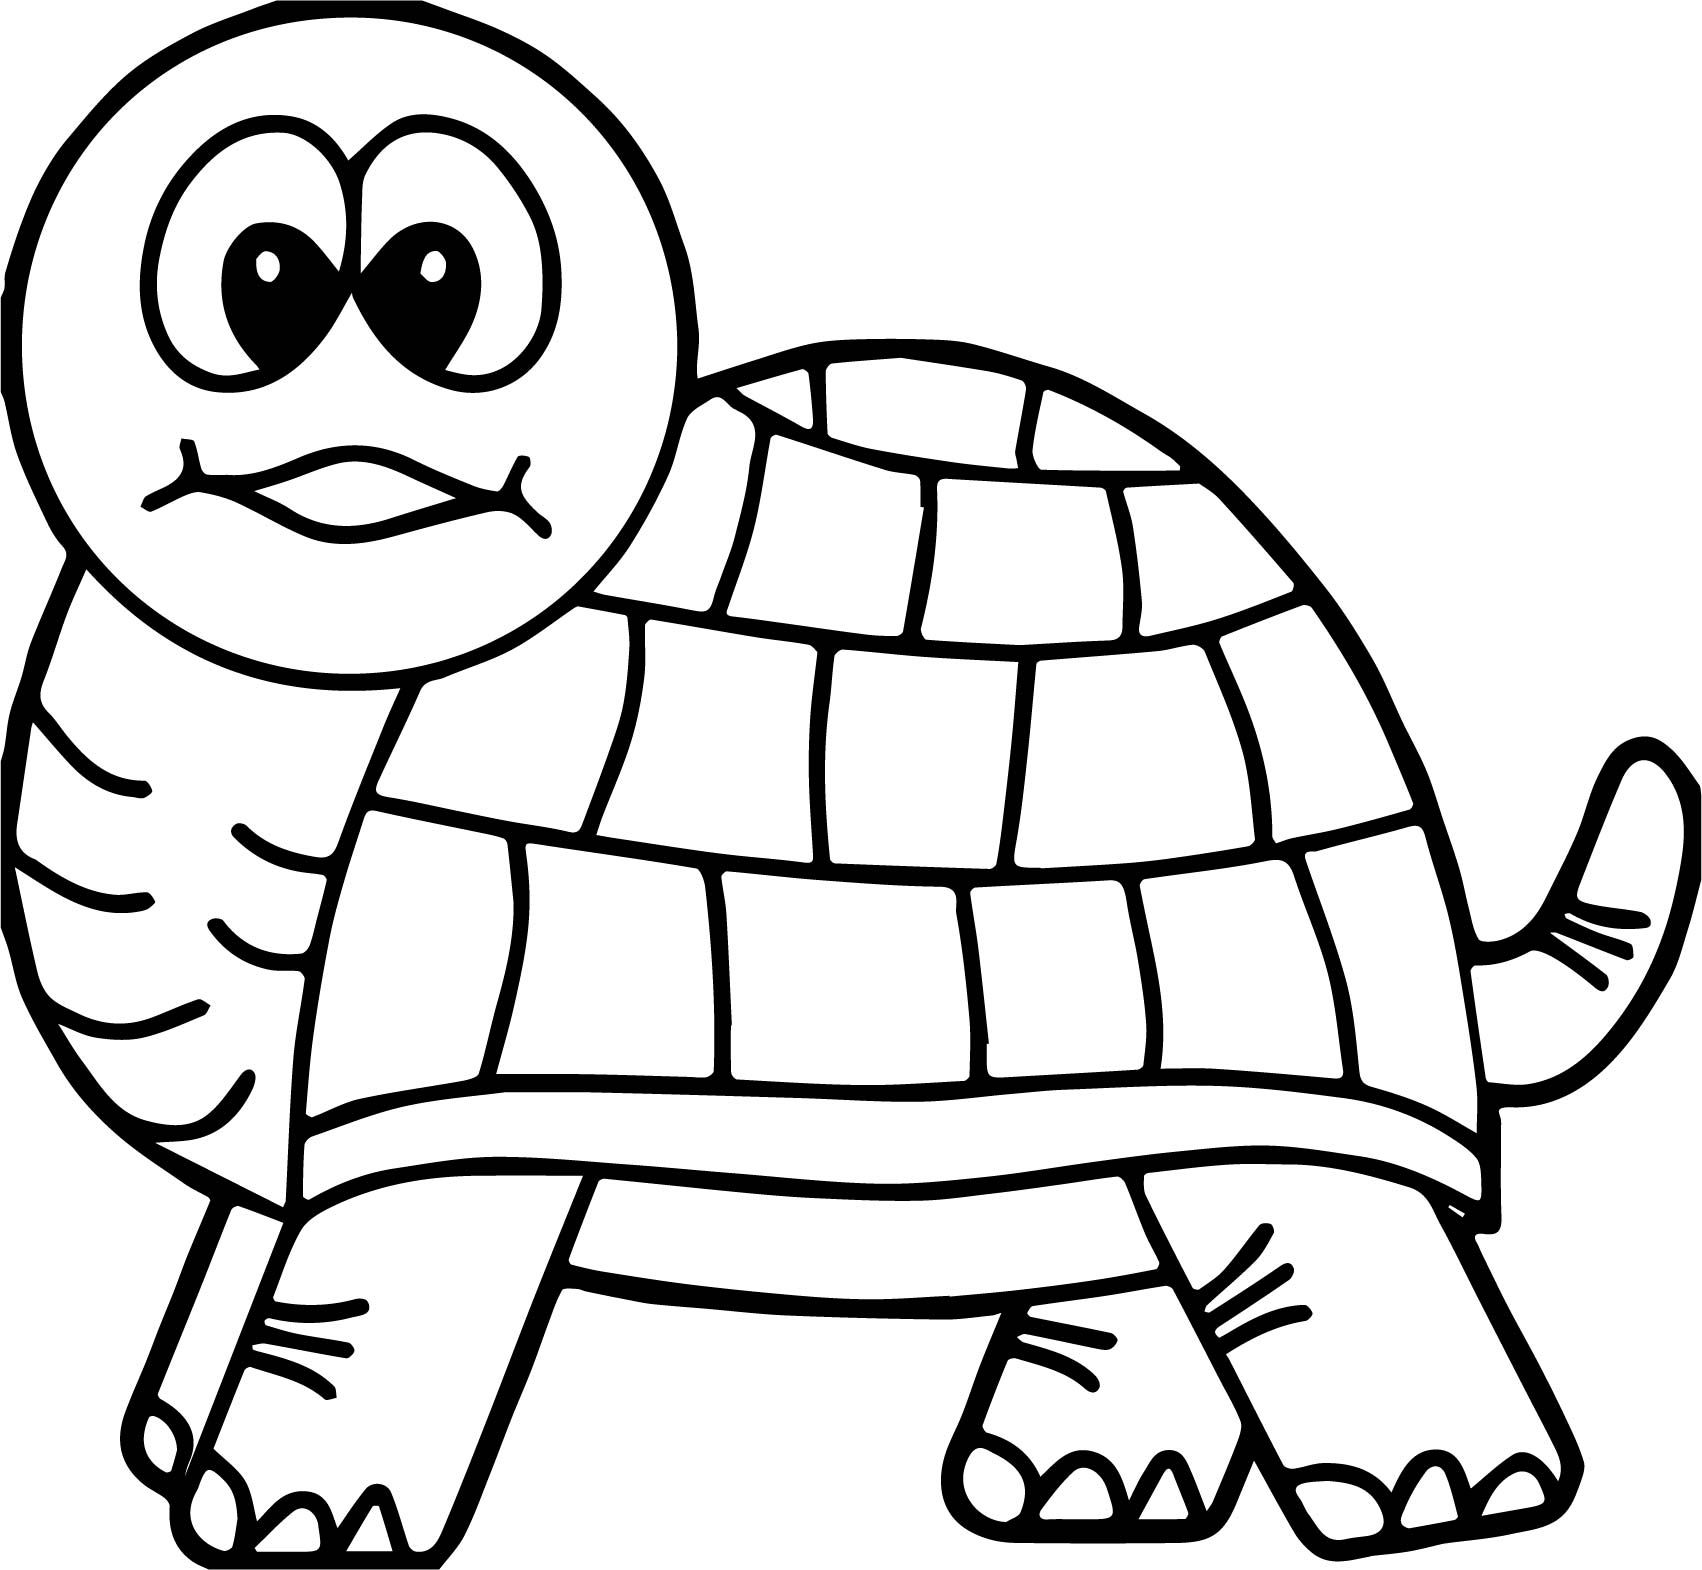 turtle pictures to color turtles to download for free turtles kids coloring pages pictures turtle to color